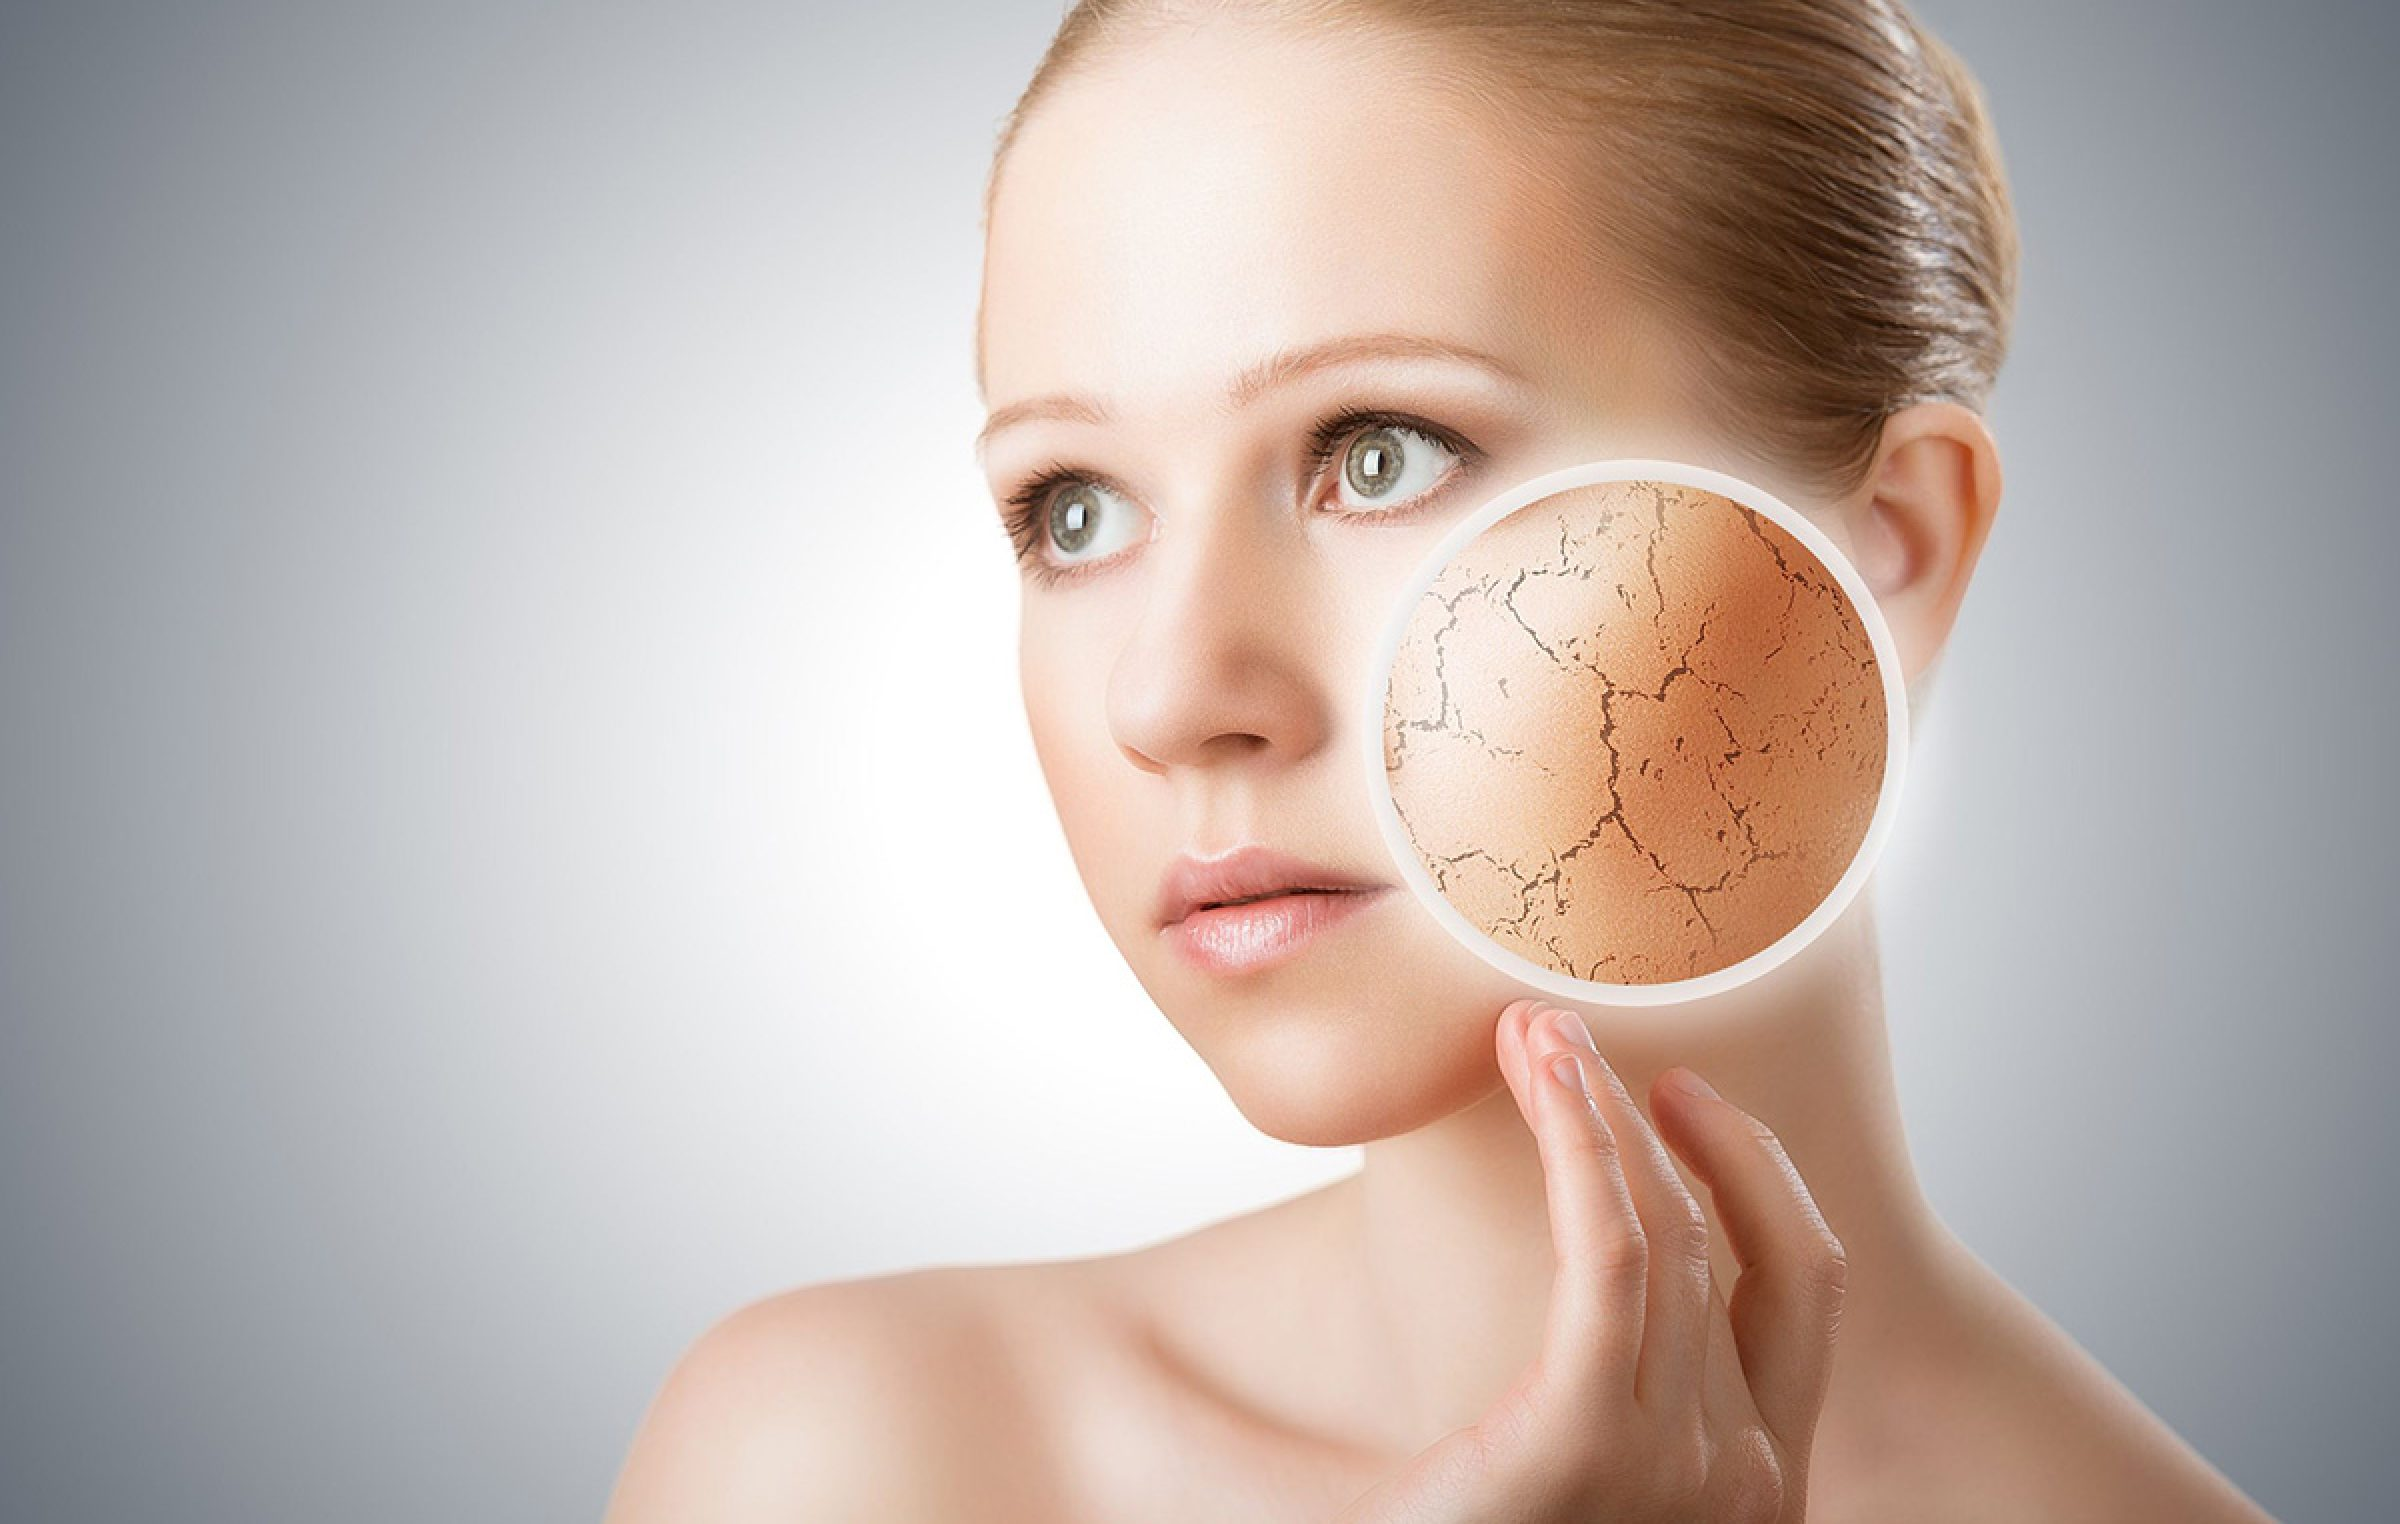 Learn About Dry Skincare And How To Prevent Dryness